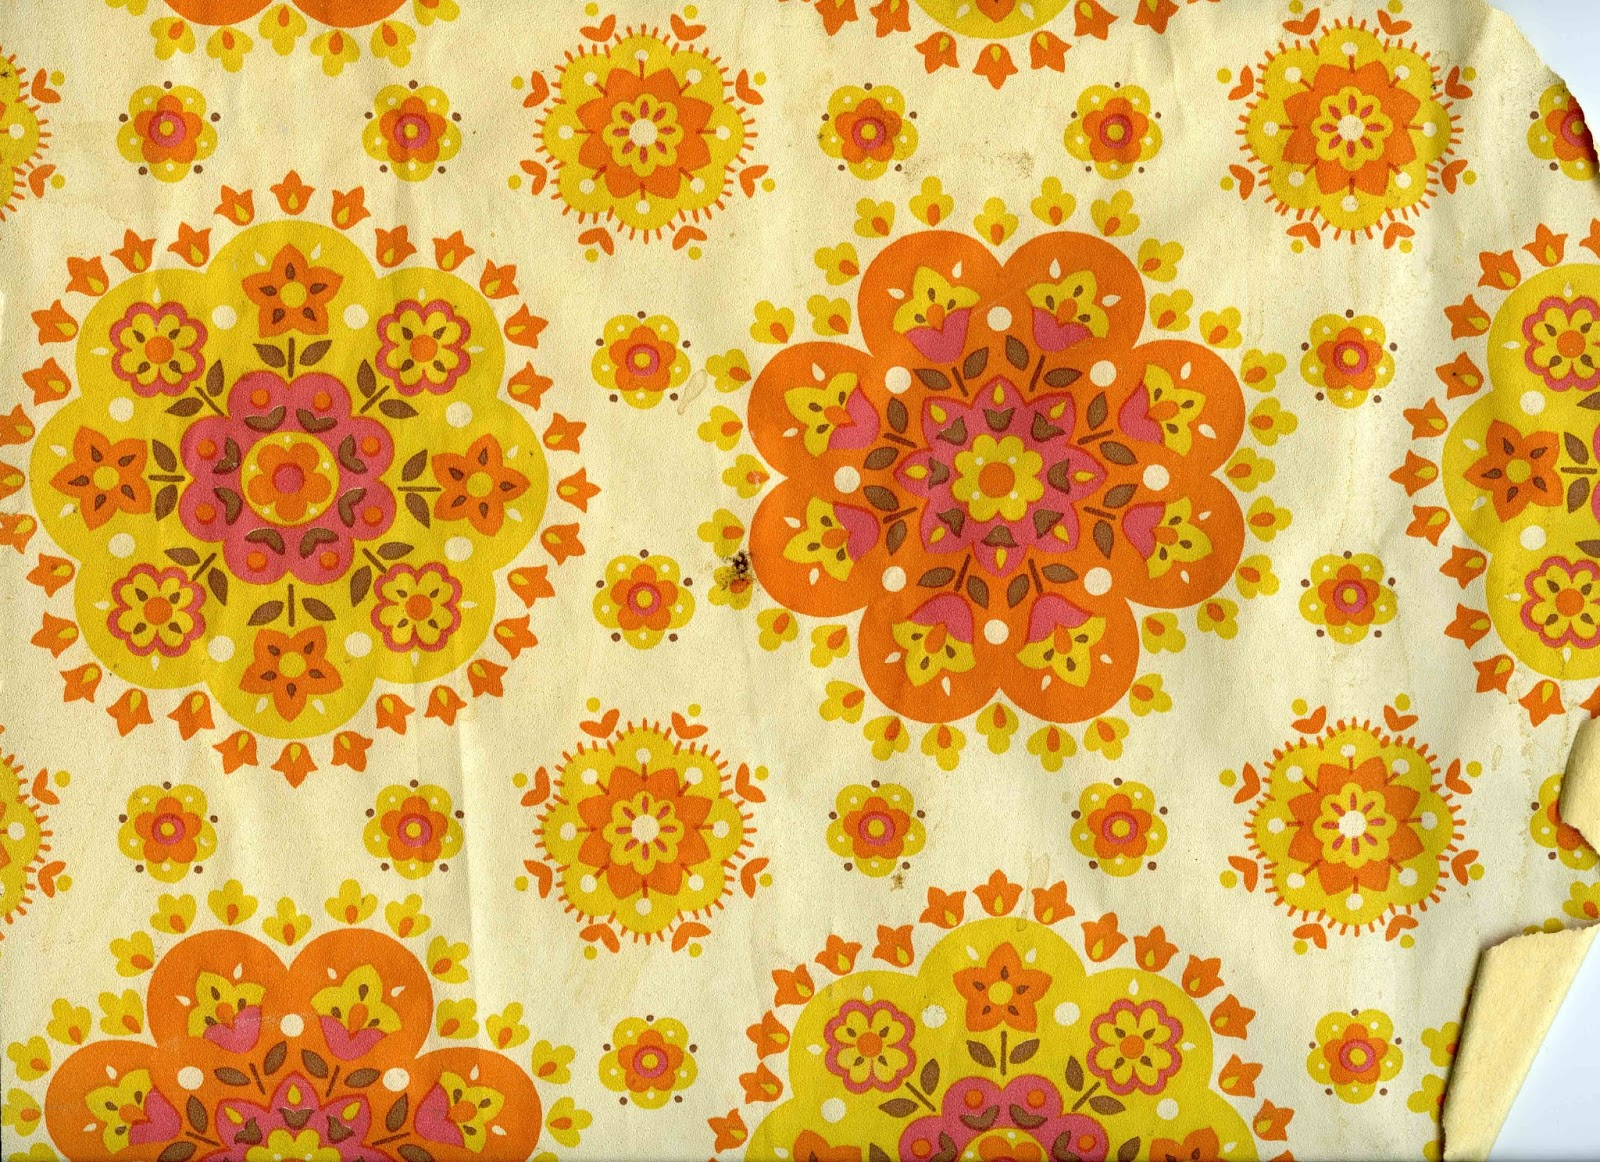 yellow floral pattern - photo #41